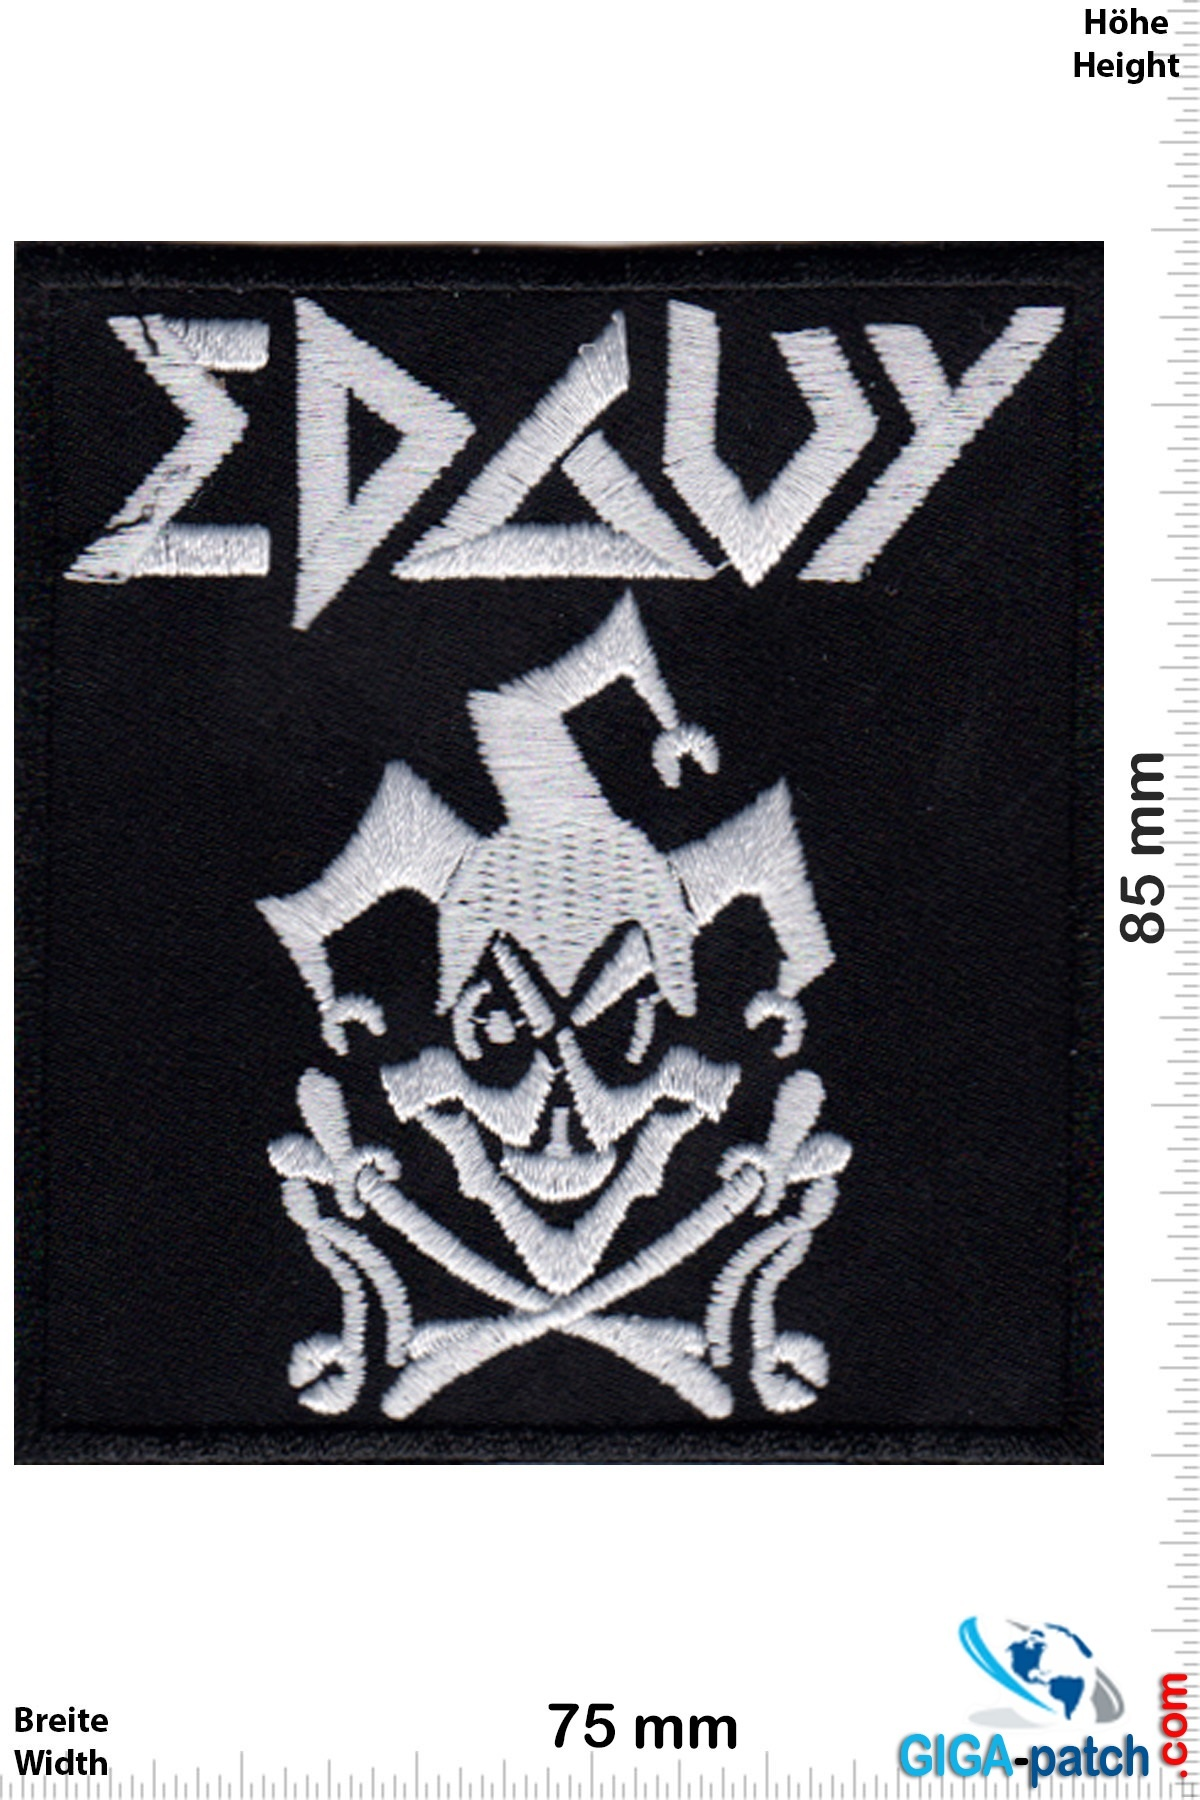 Edguy Edguy -Age of the Joker - Power-Metal-Band